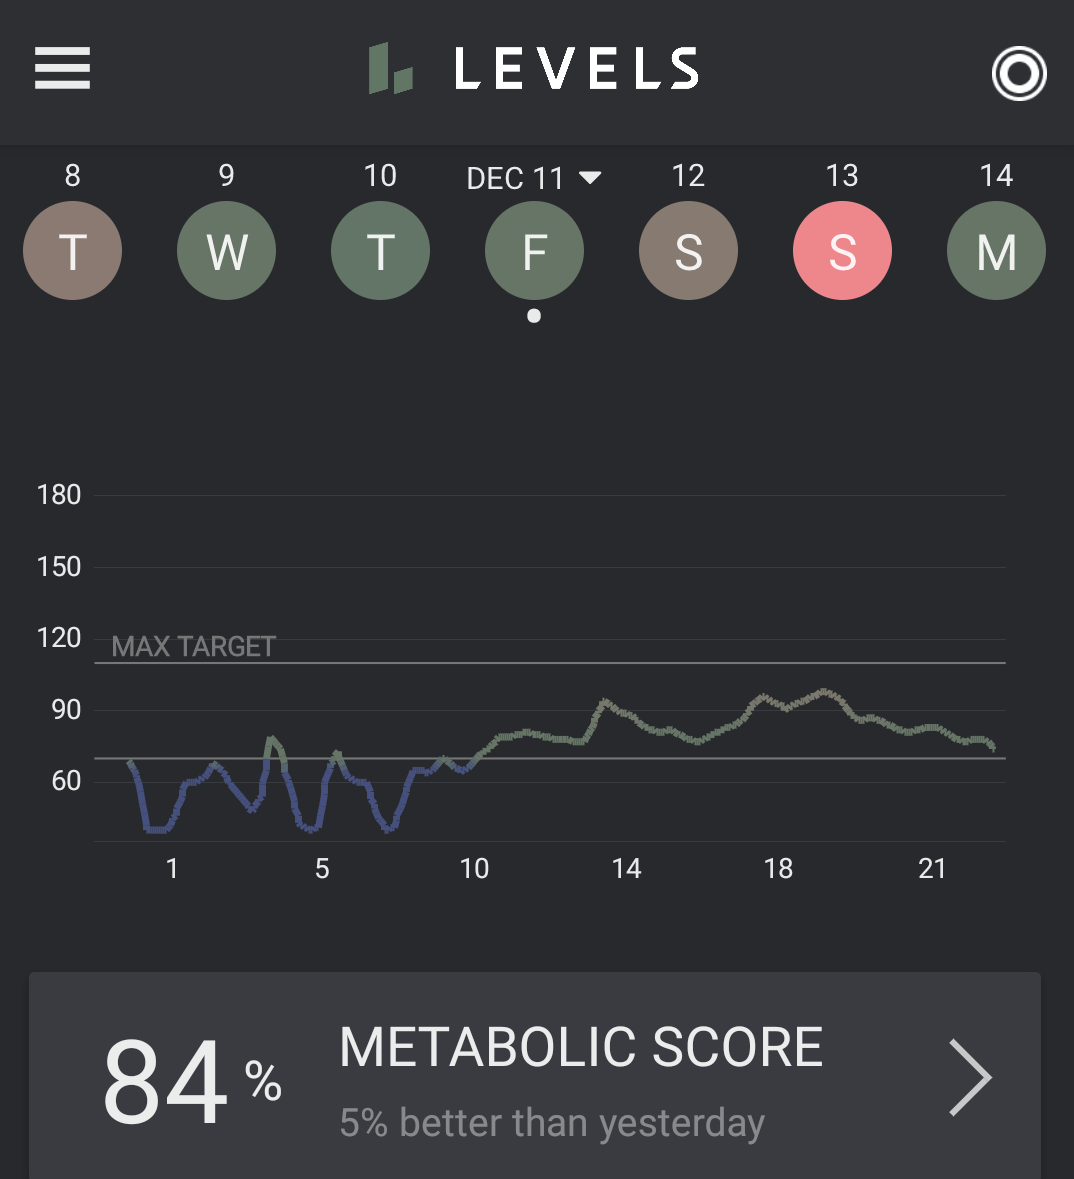 My blood glucose on a typical day was hypoglycemic at night and stayed comfortably and easily under 100